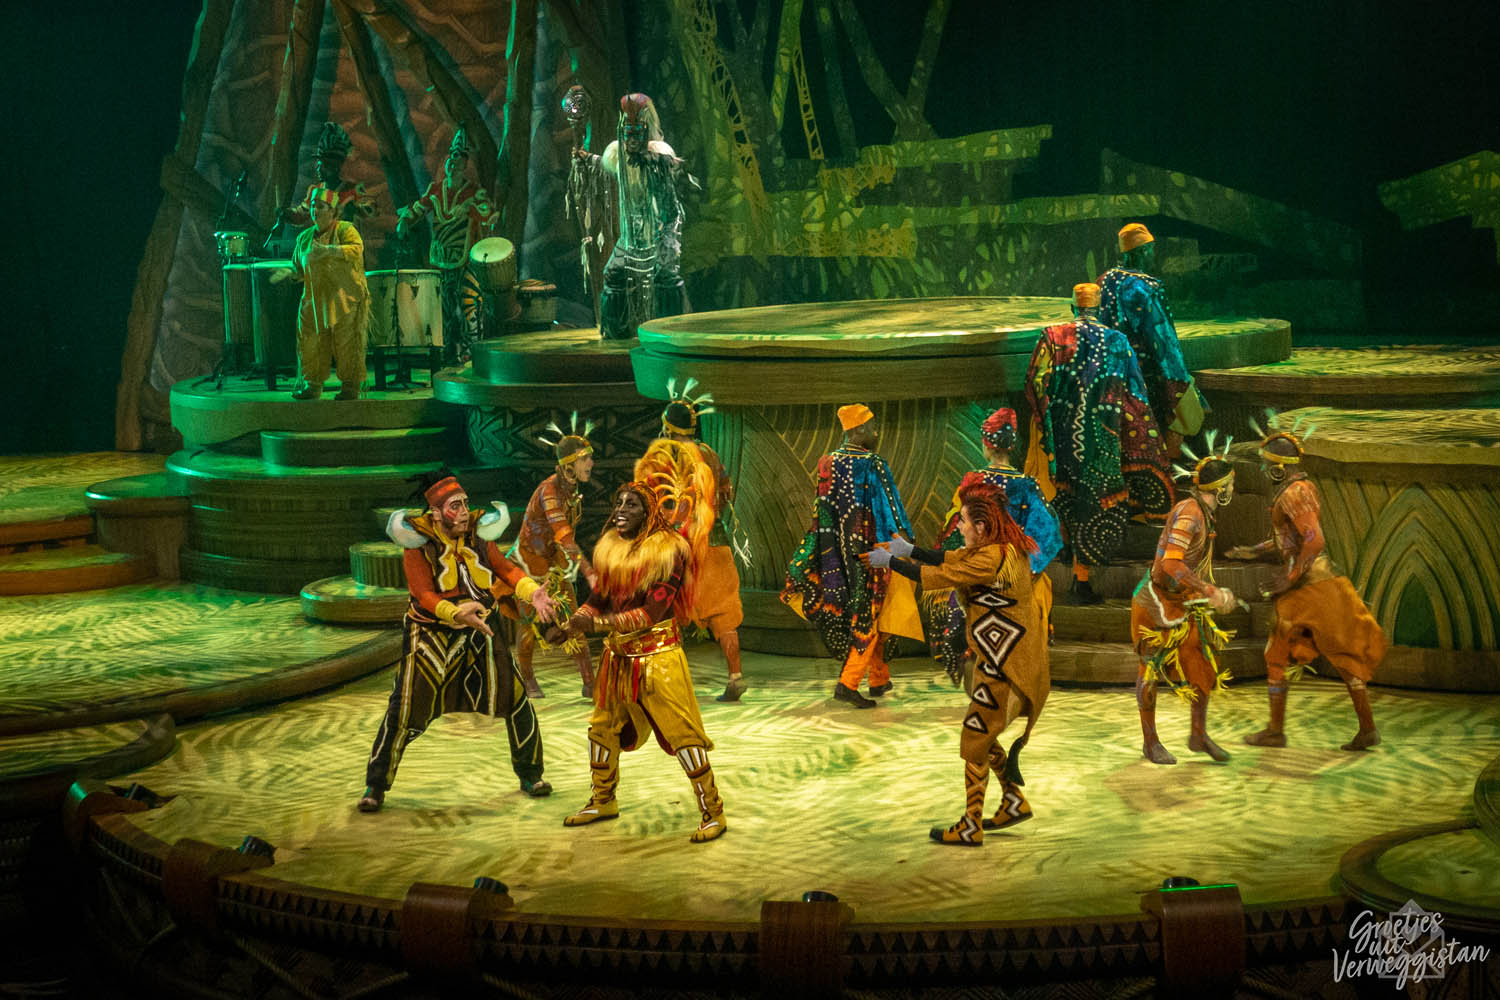 Simba, Timon en Pumbaa tijdens de show The Lion King: Rhythms of the Pride Lands in Frontierland Theater.